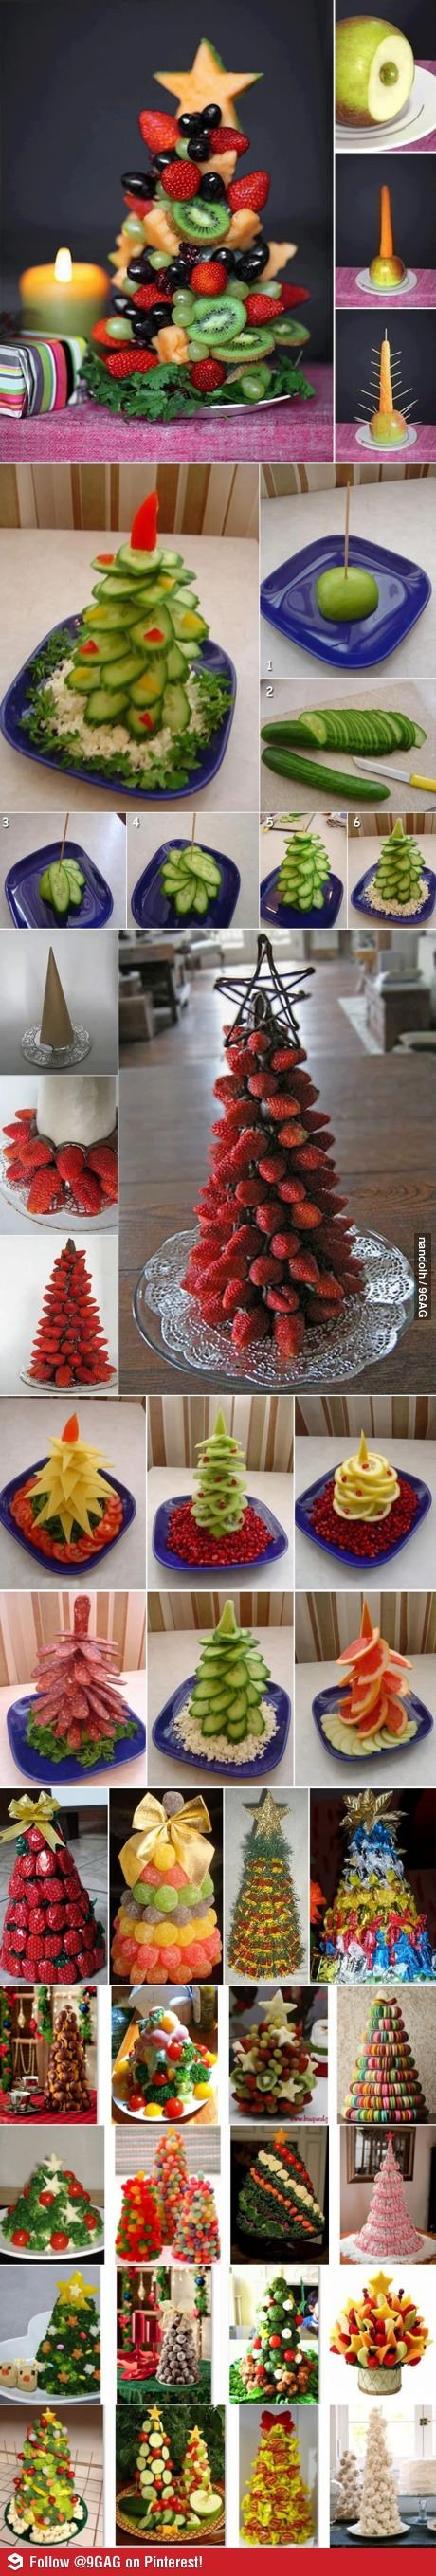 Chocolate dipped, strawberry center piece